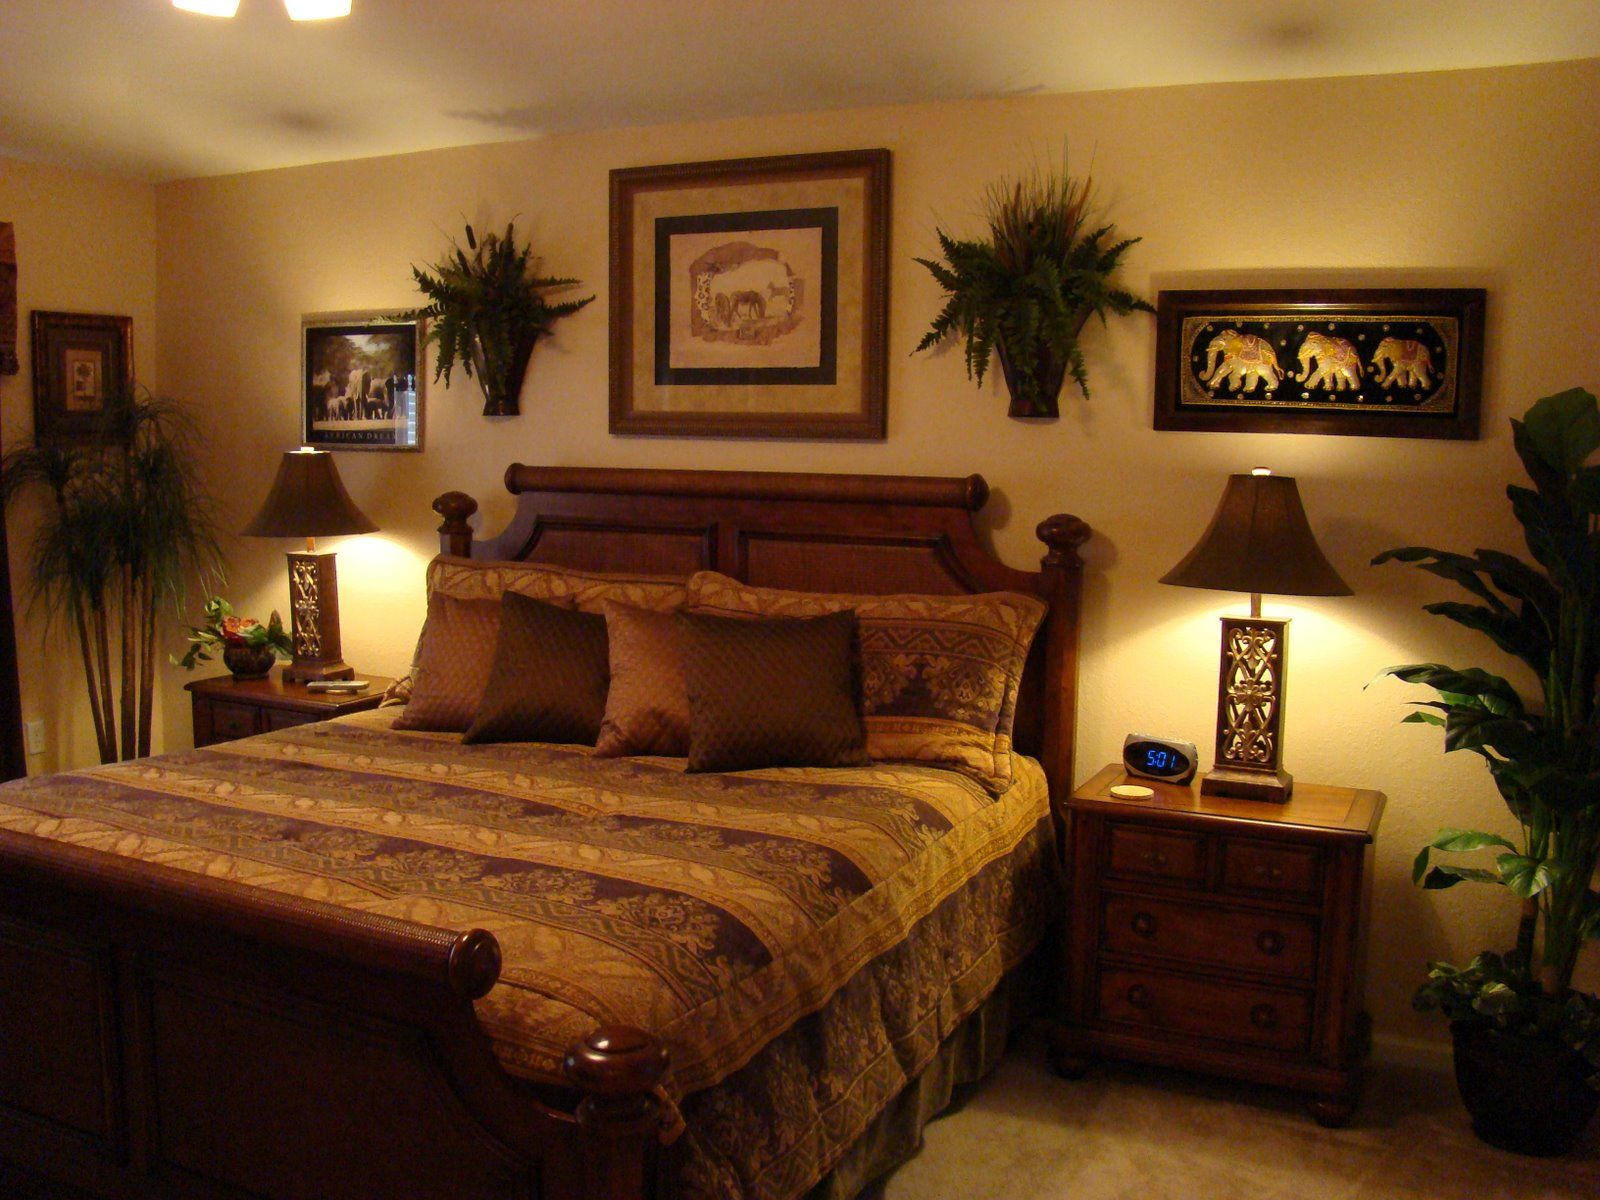 Top ten tourist attractions in kenya master bedroom for Room decor stuff